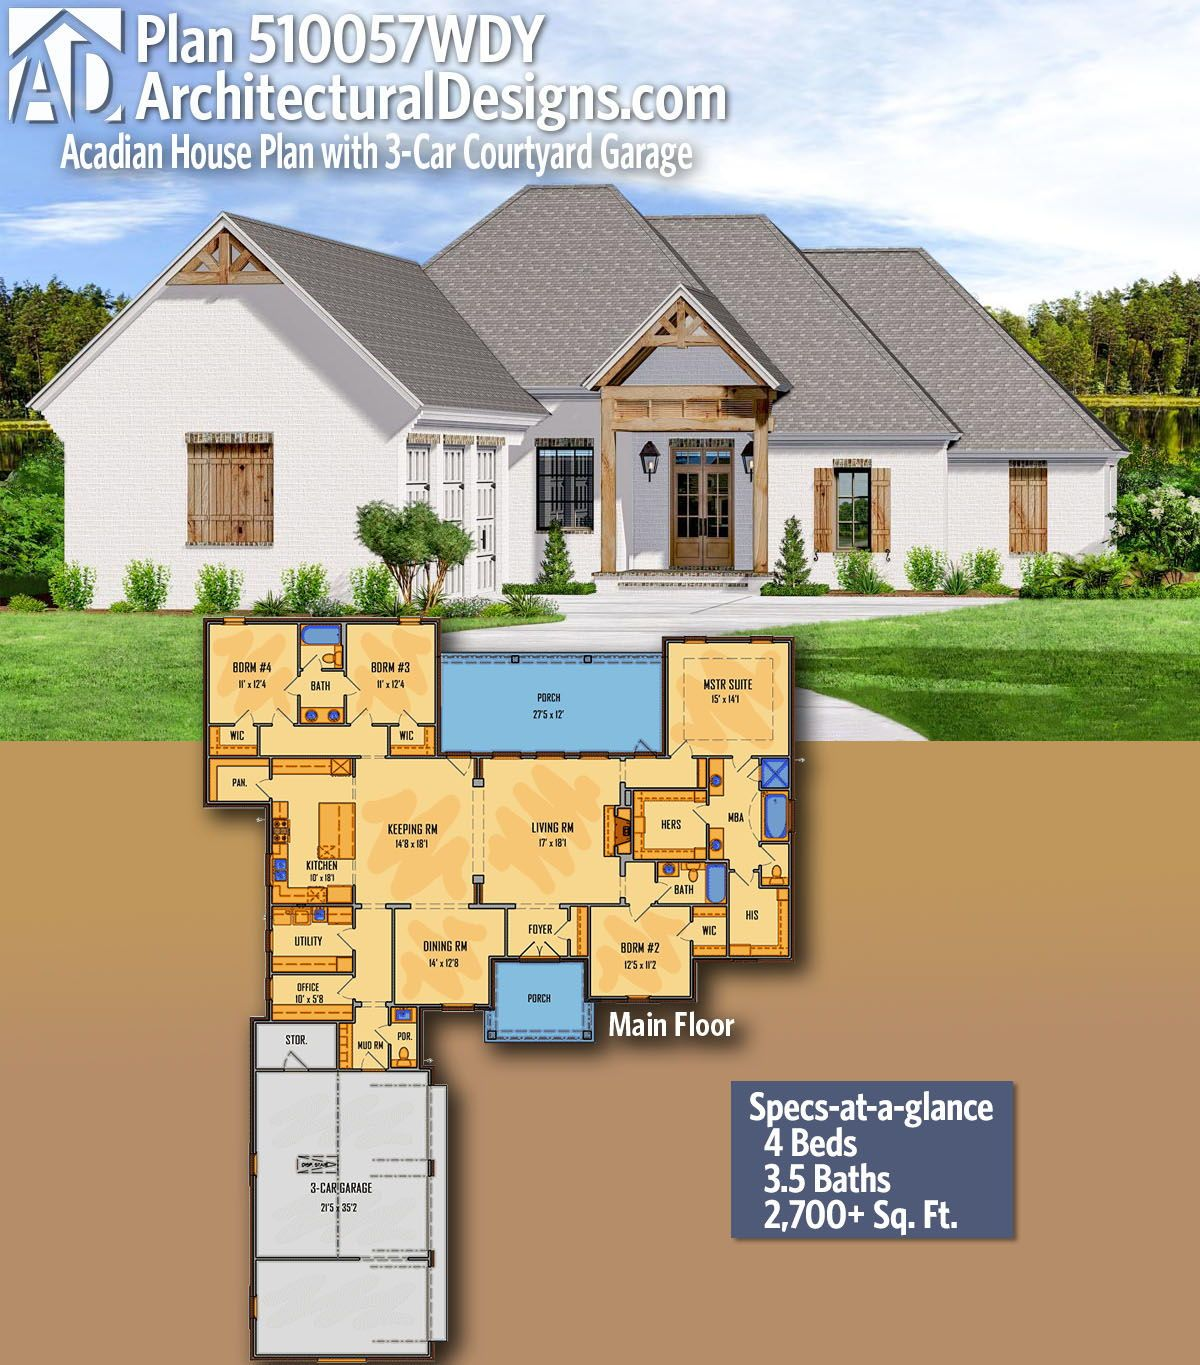 Plan 510057wdy Acadian House Plan With 3 Car Courtyard Garage Acadian House Plans New House Plans House Plans